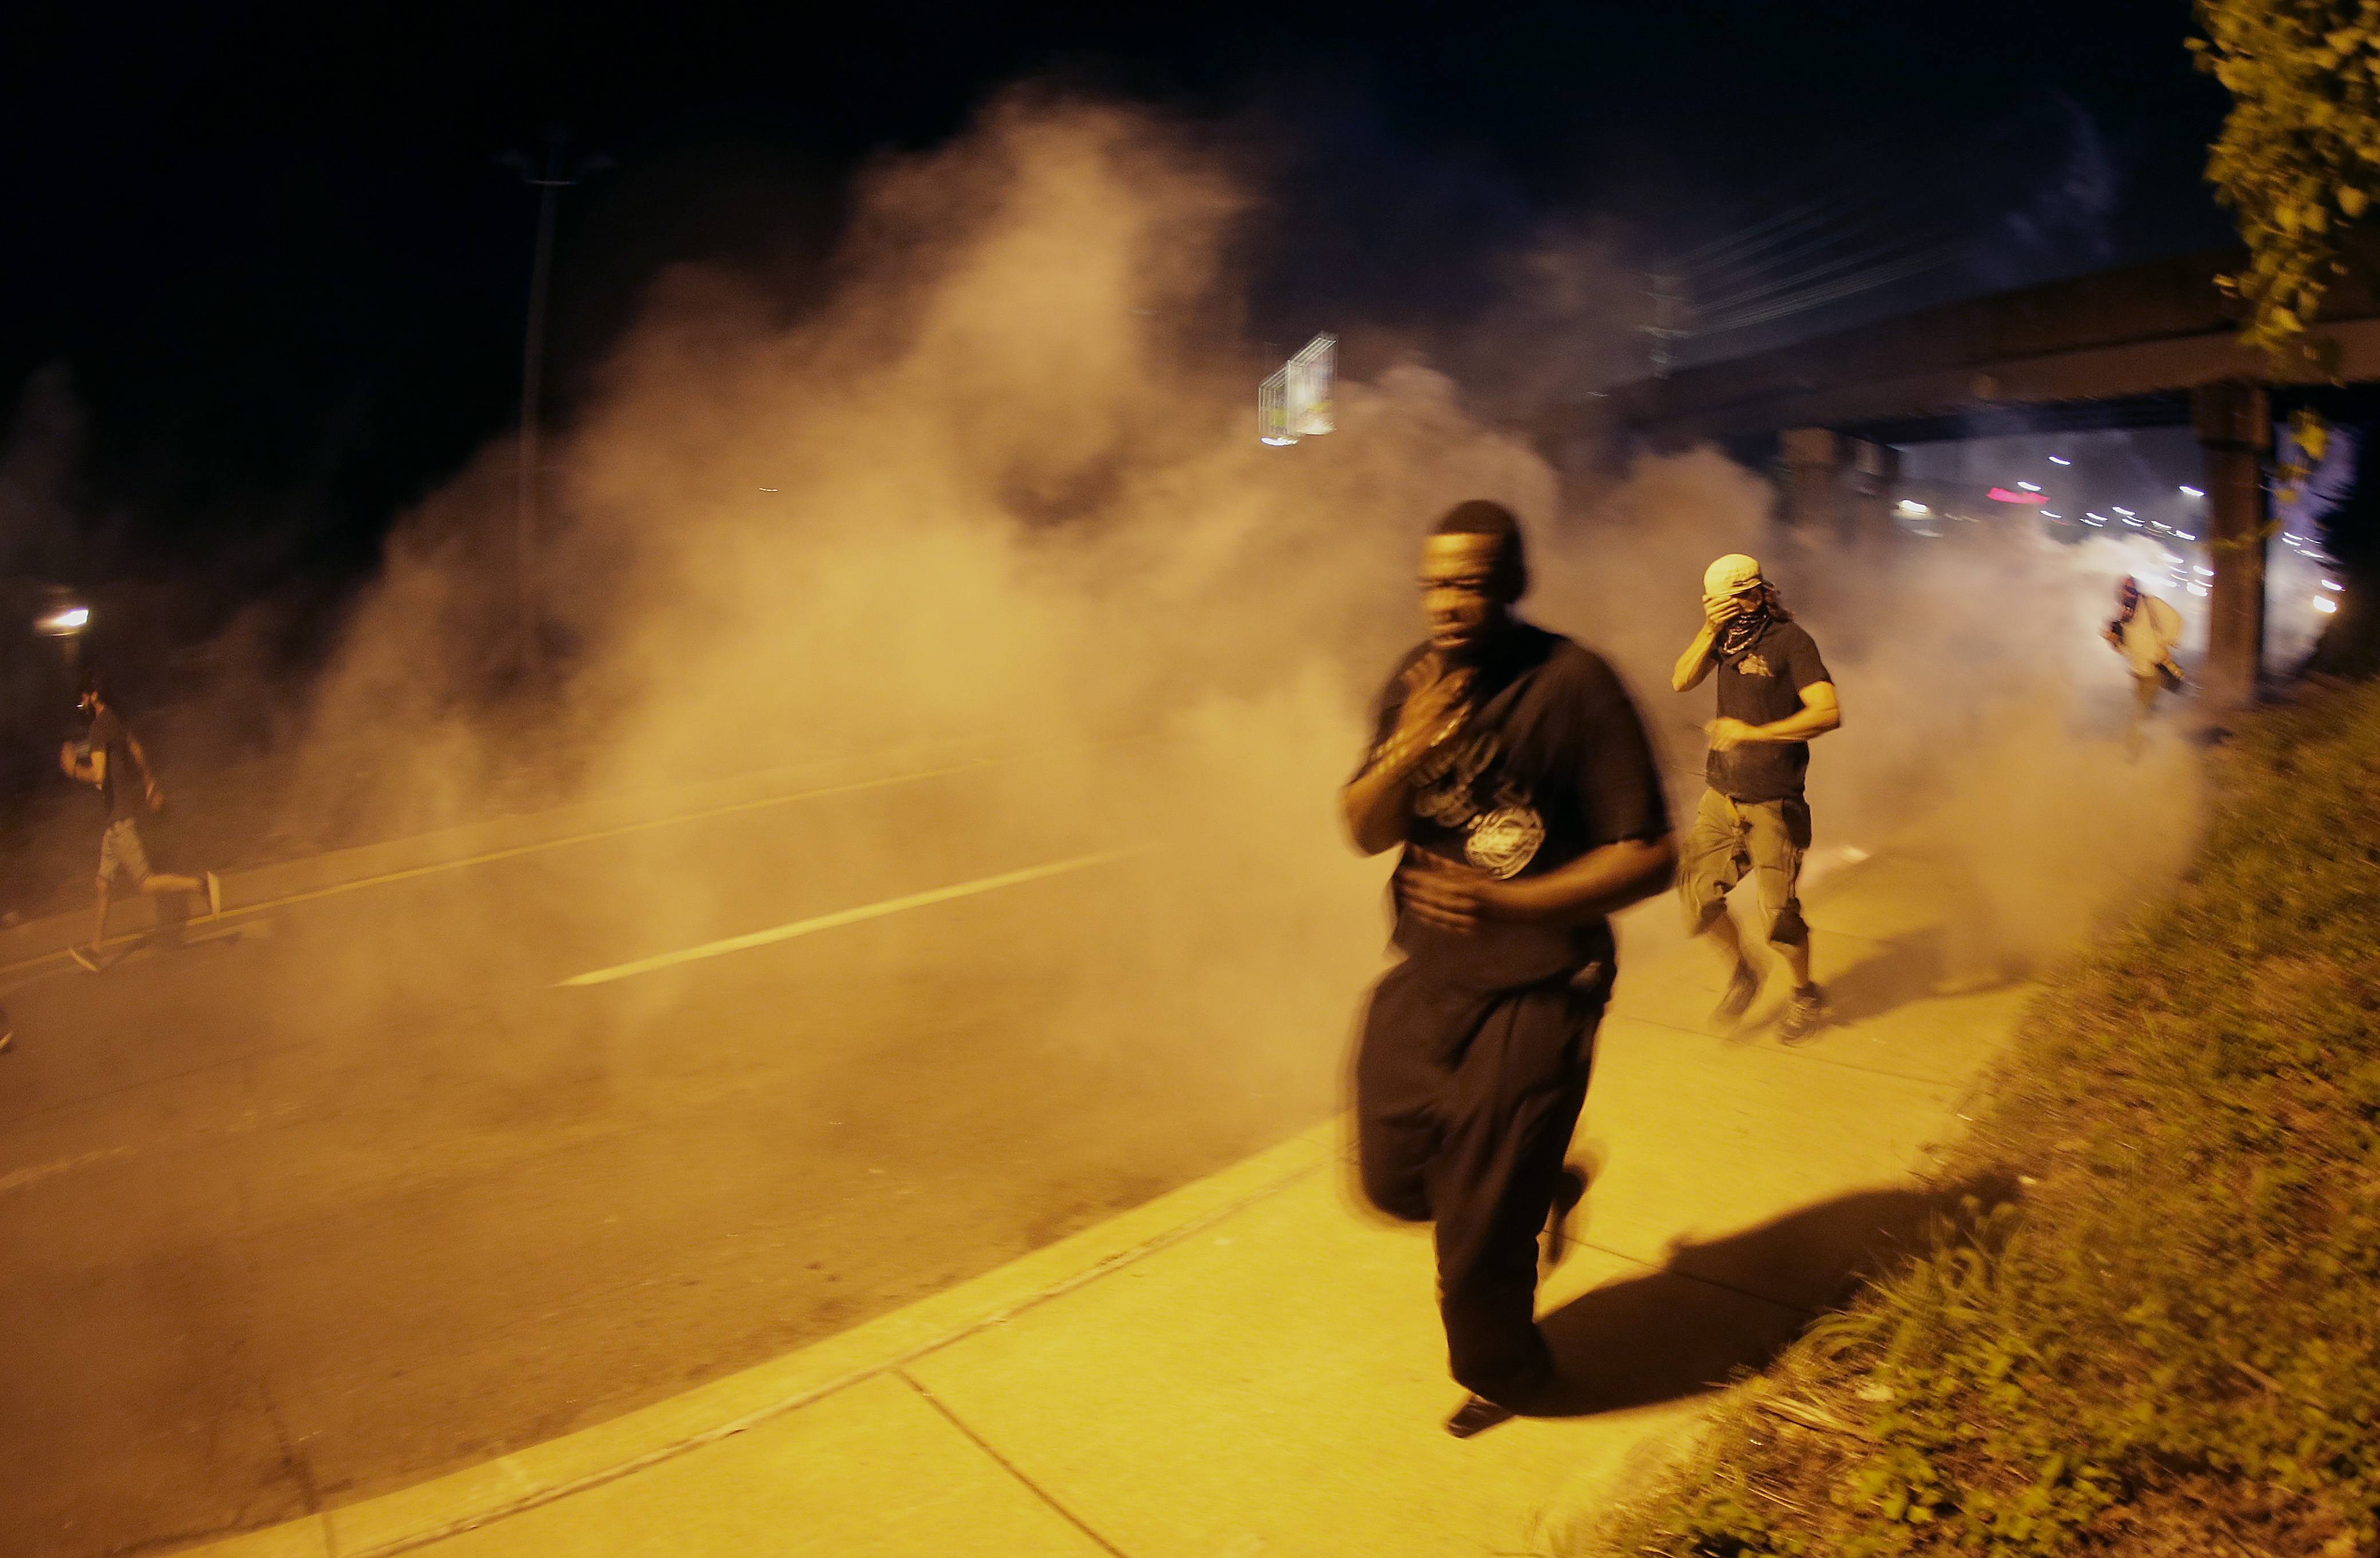 People run from tear gas after police dispersed a crowd Sunday, as they staged a protest for Michael Brown, who was killed by a police officer last Saturday in Ferguson, Mo. As night fell Sunday in Ferguson, another peaceful protest quickly deteriorated after marchers pushed toward one end of a street. Police attempted to push them back by firing tear gas and shouting over a bullhorn that the protest was no longer peaceful.